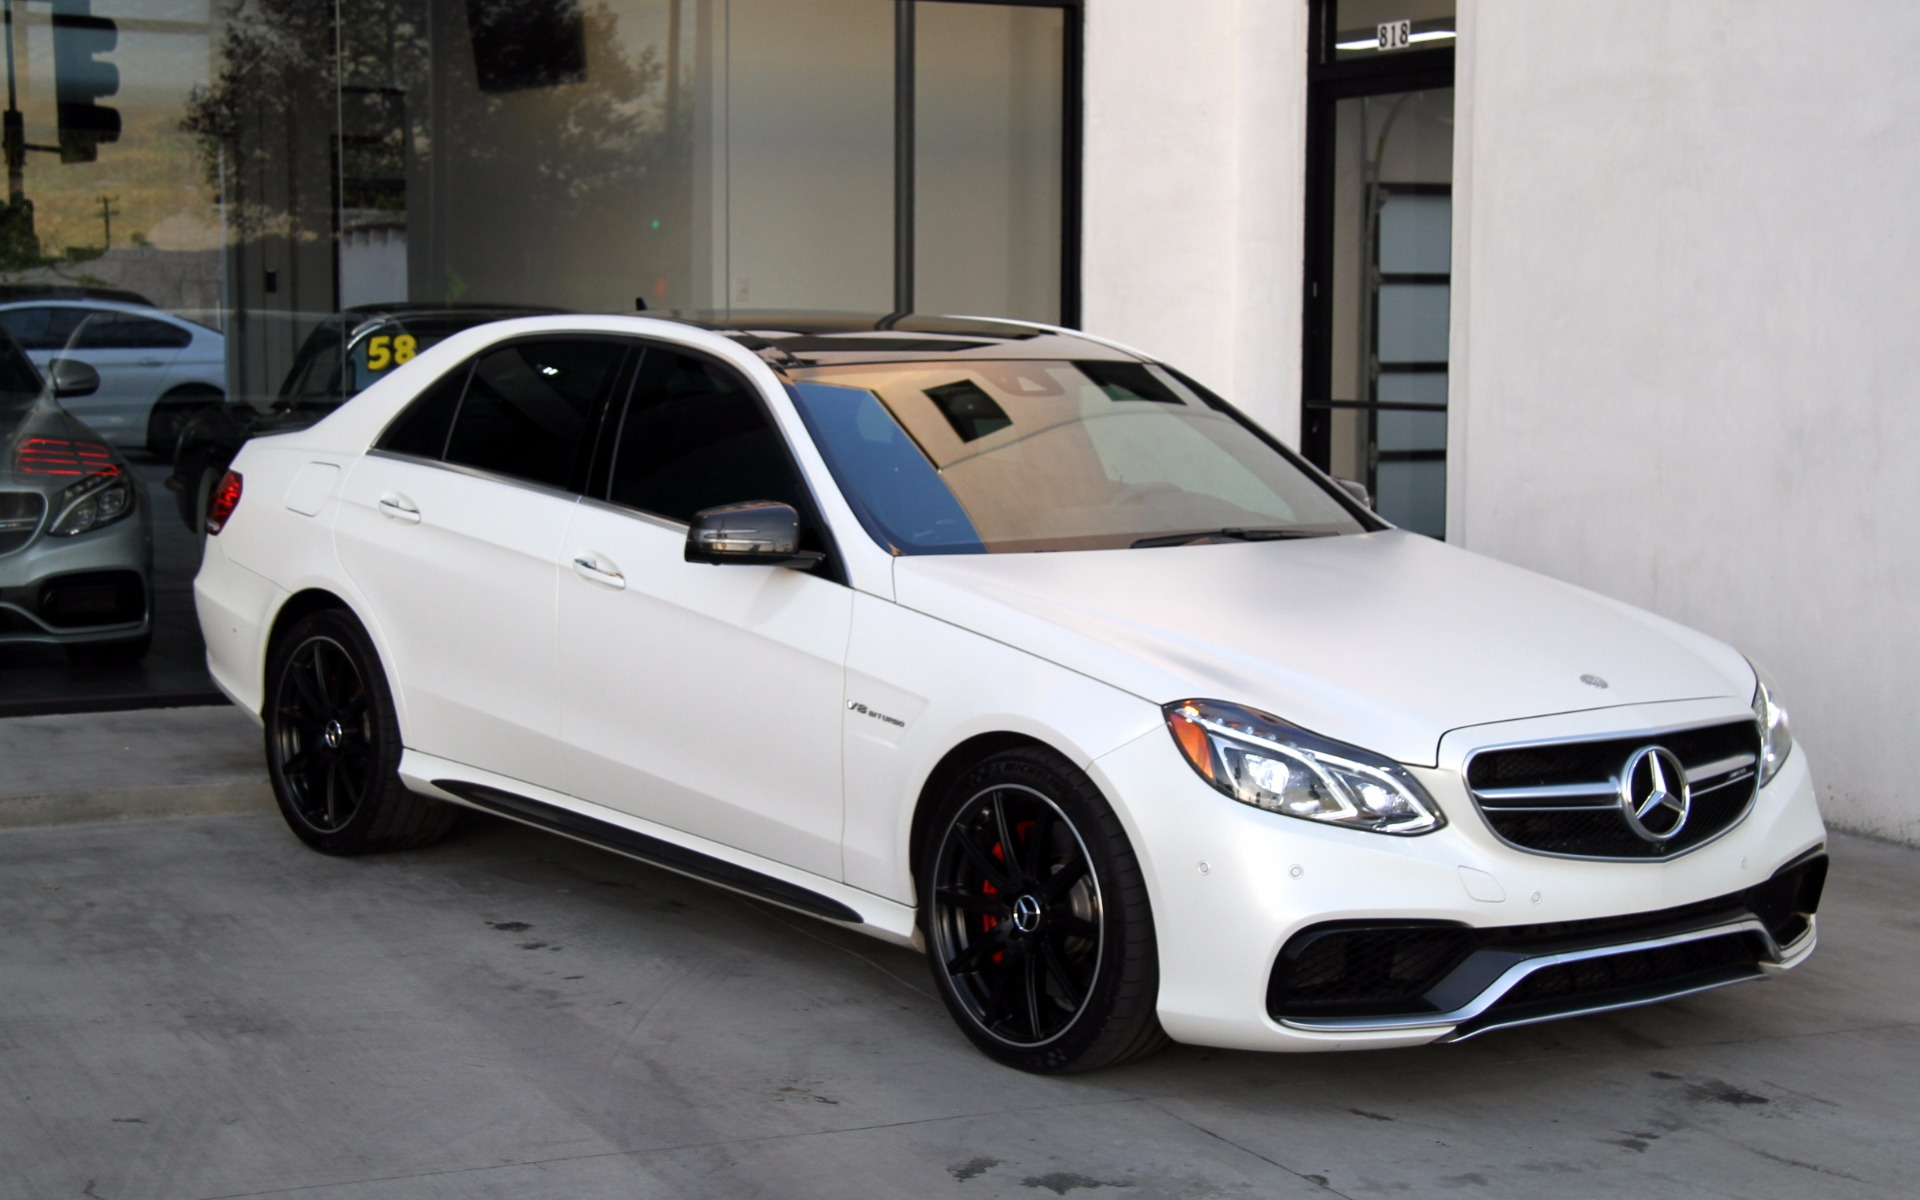 2015 mercedes benz e 63 amg s model stock 6049 for sale for 2015 mercedes benz models